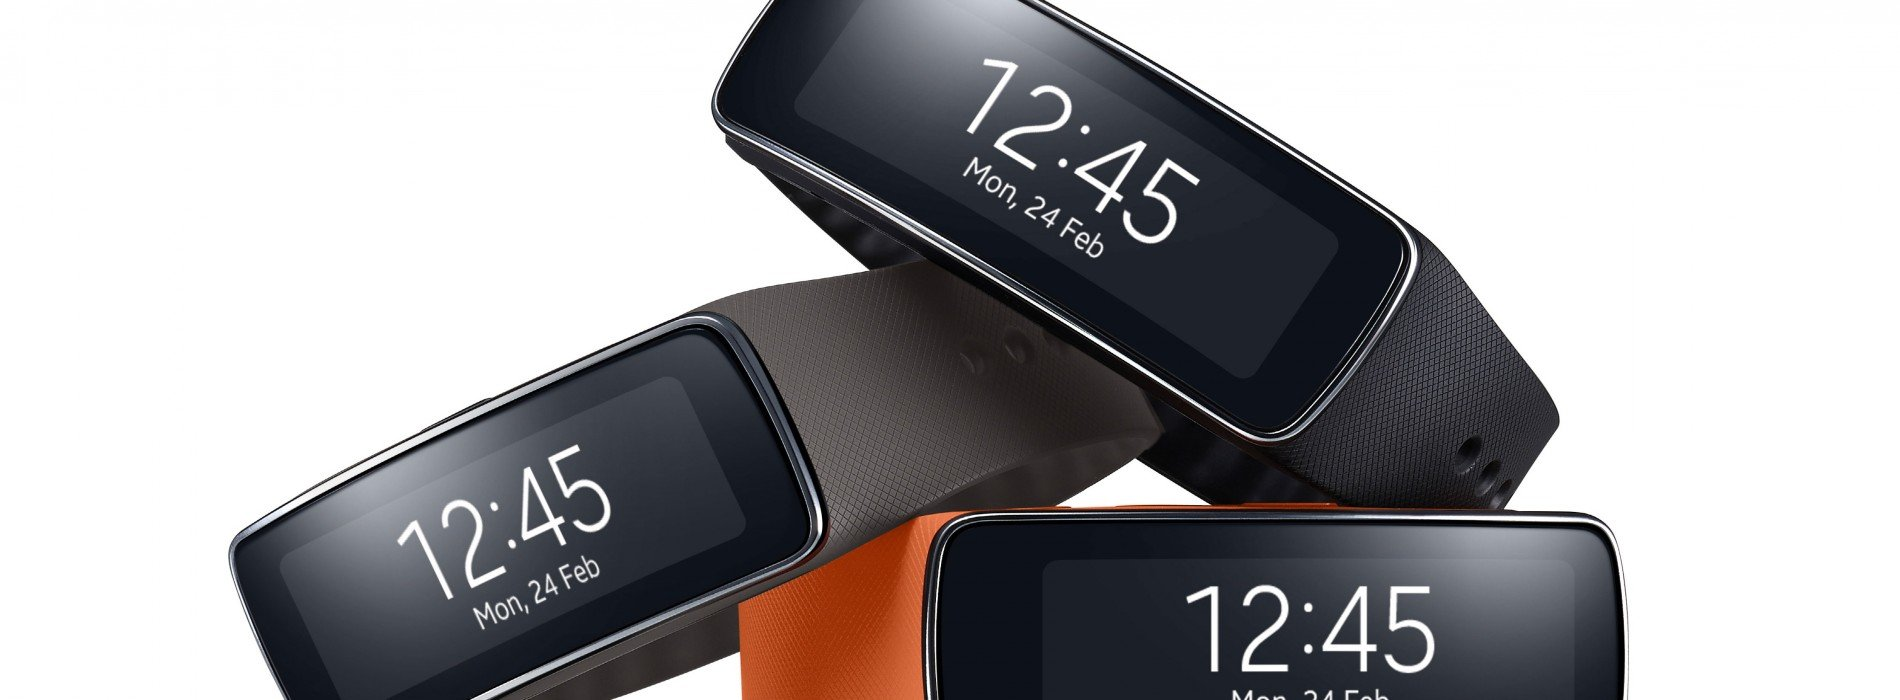 Samsung Gear Fit gallery